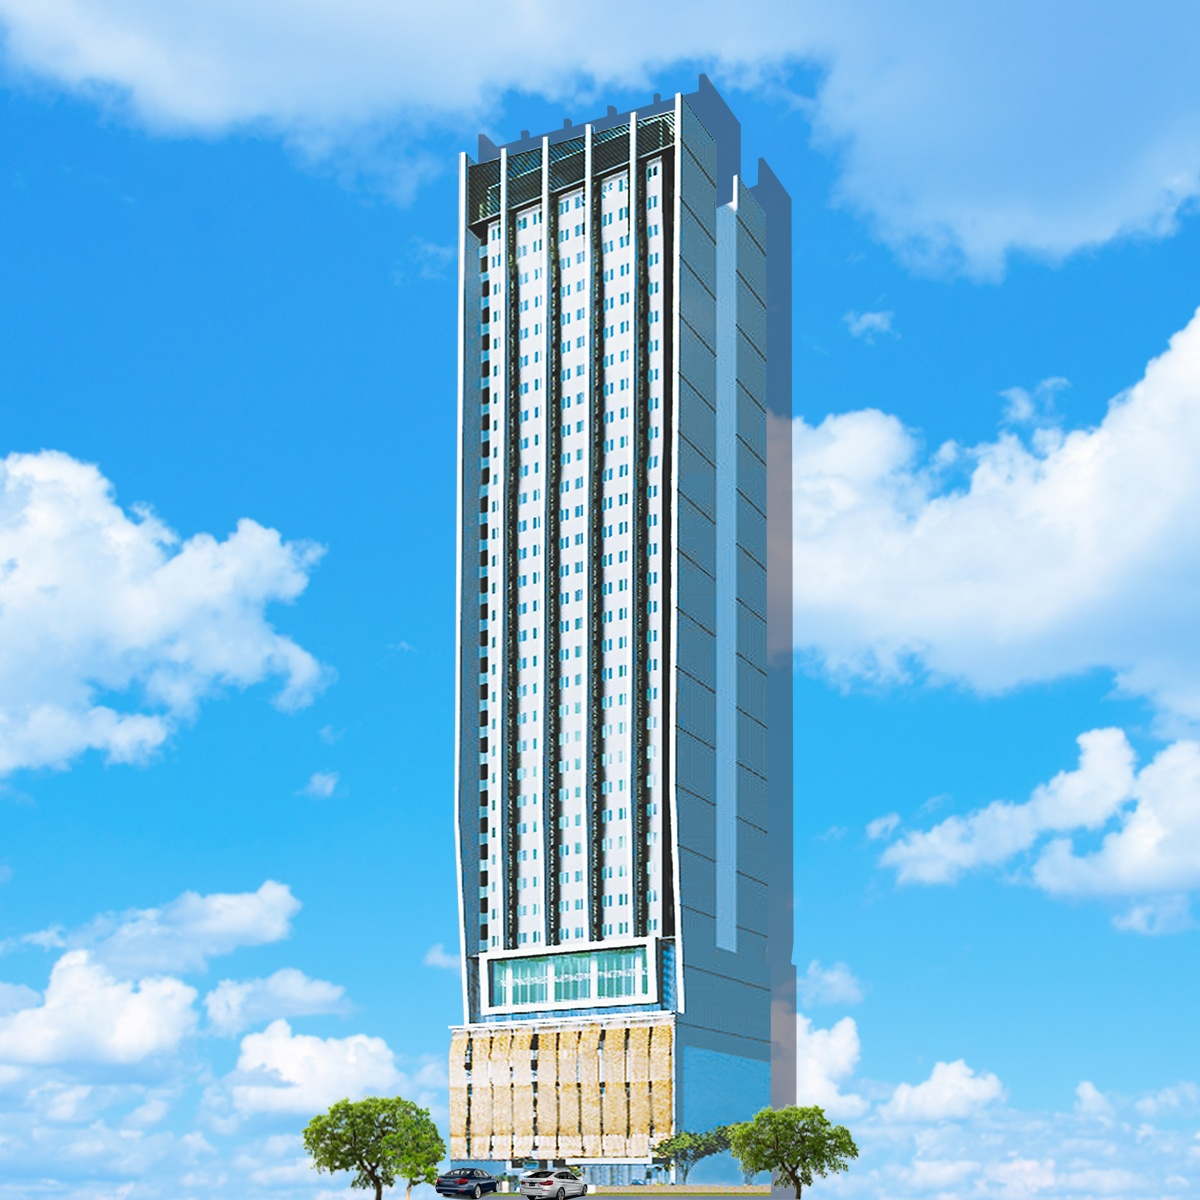 Get yourself an affordable yet quality condo, with Vista Residences